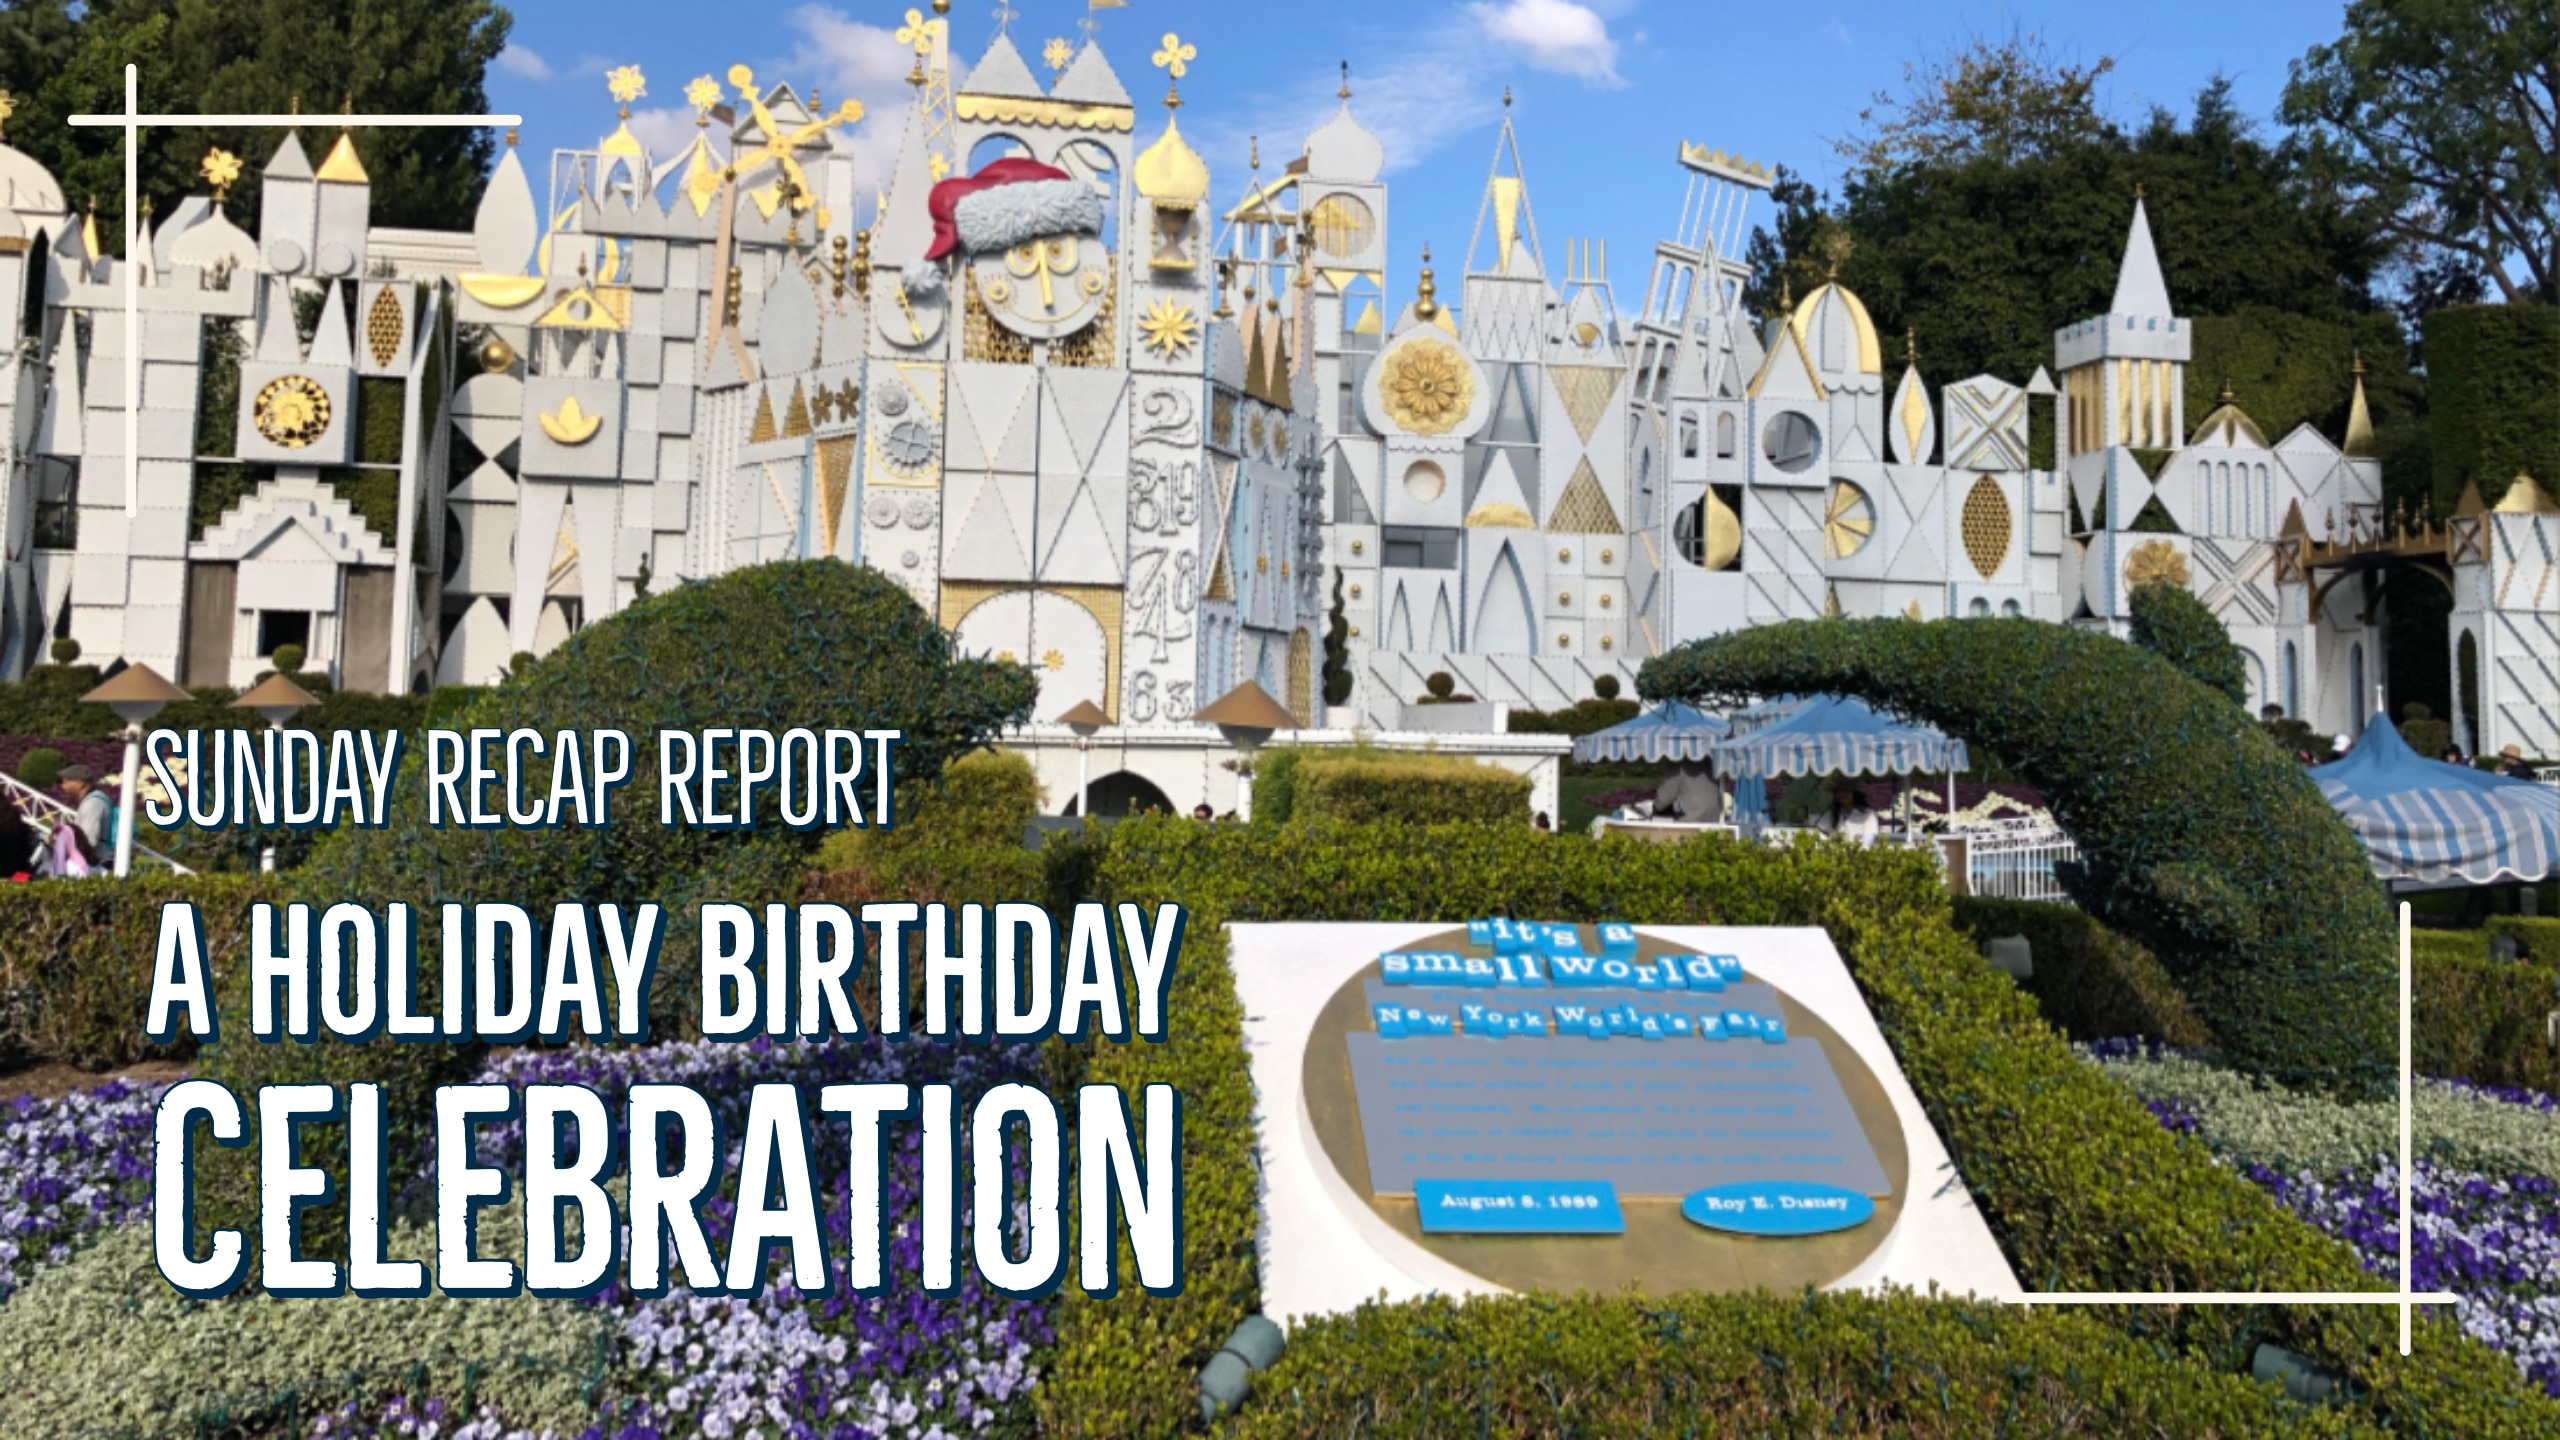 A Holiday Birthday Celebration - Sunday Recap Report